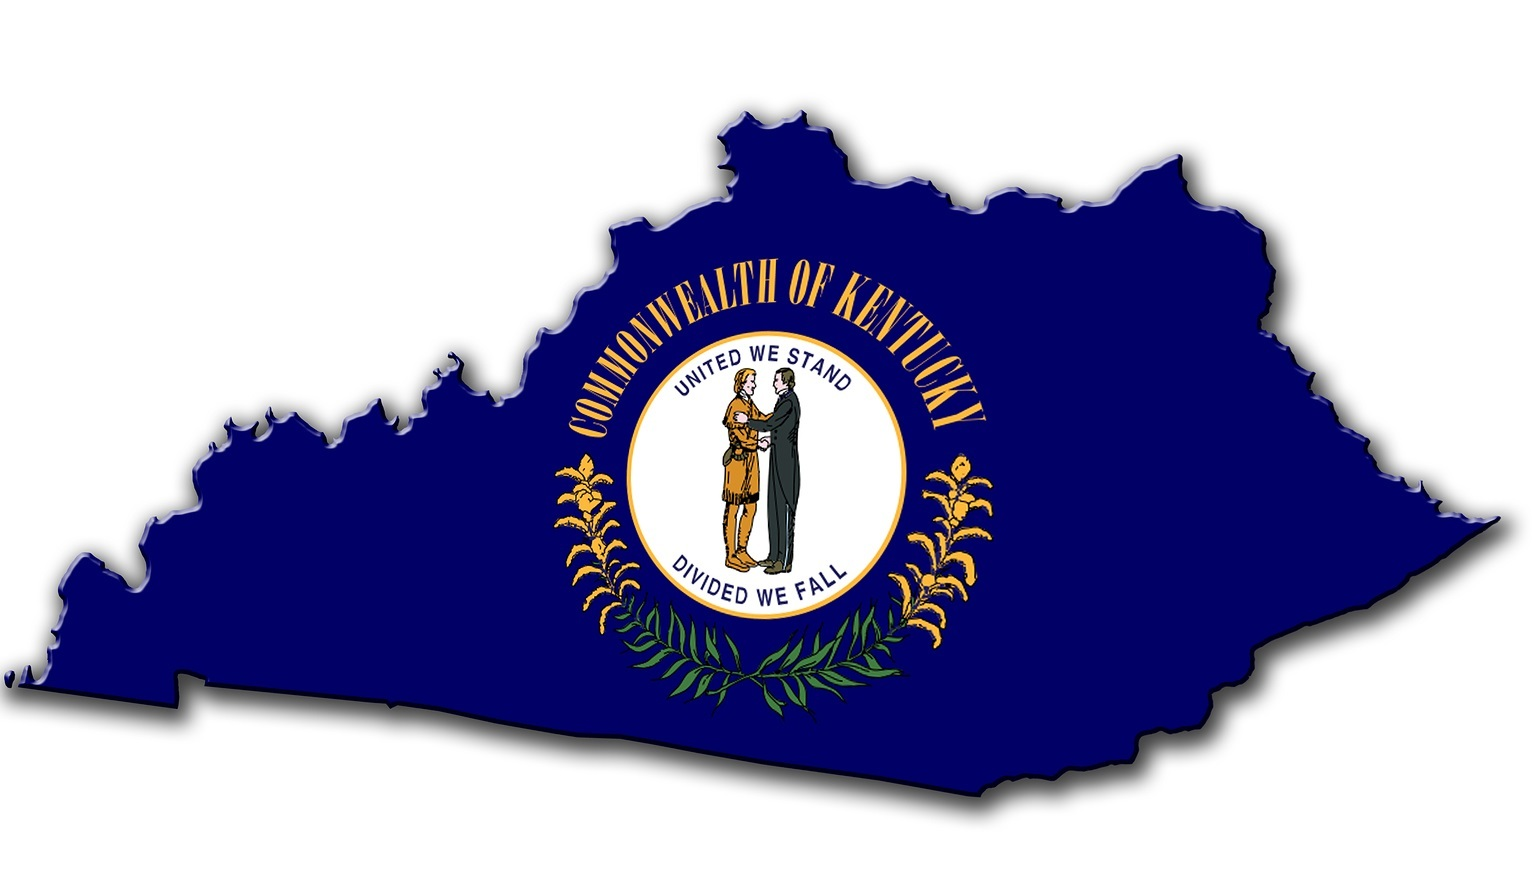 Destroying Families in Kentucky via State-sponsored Child